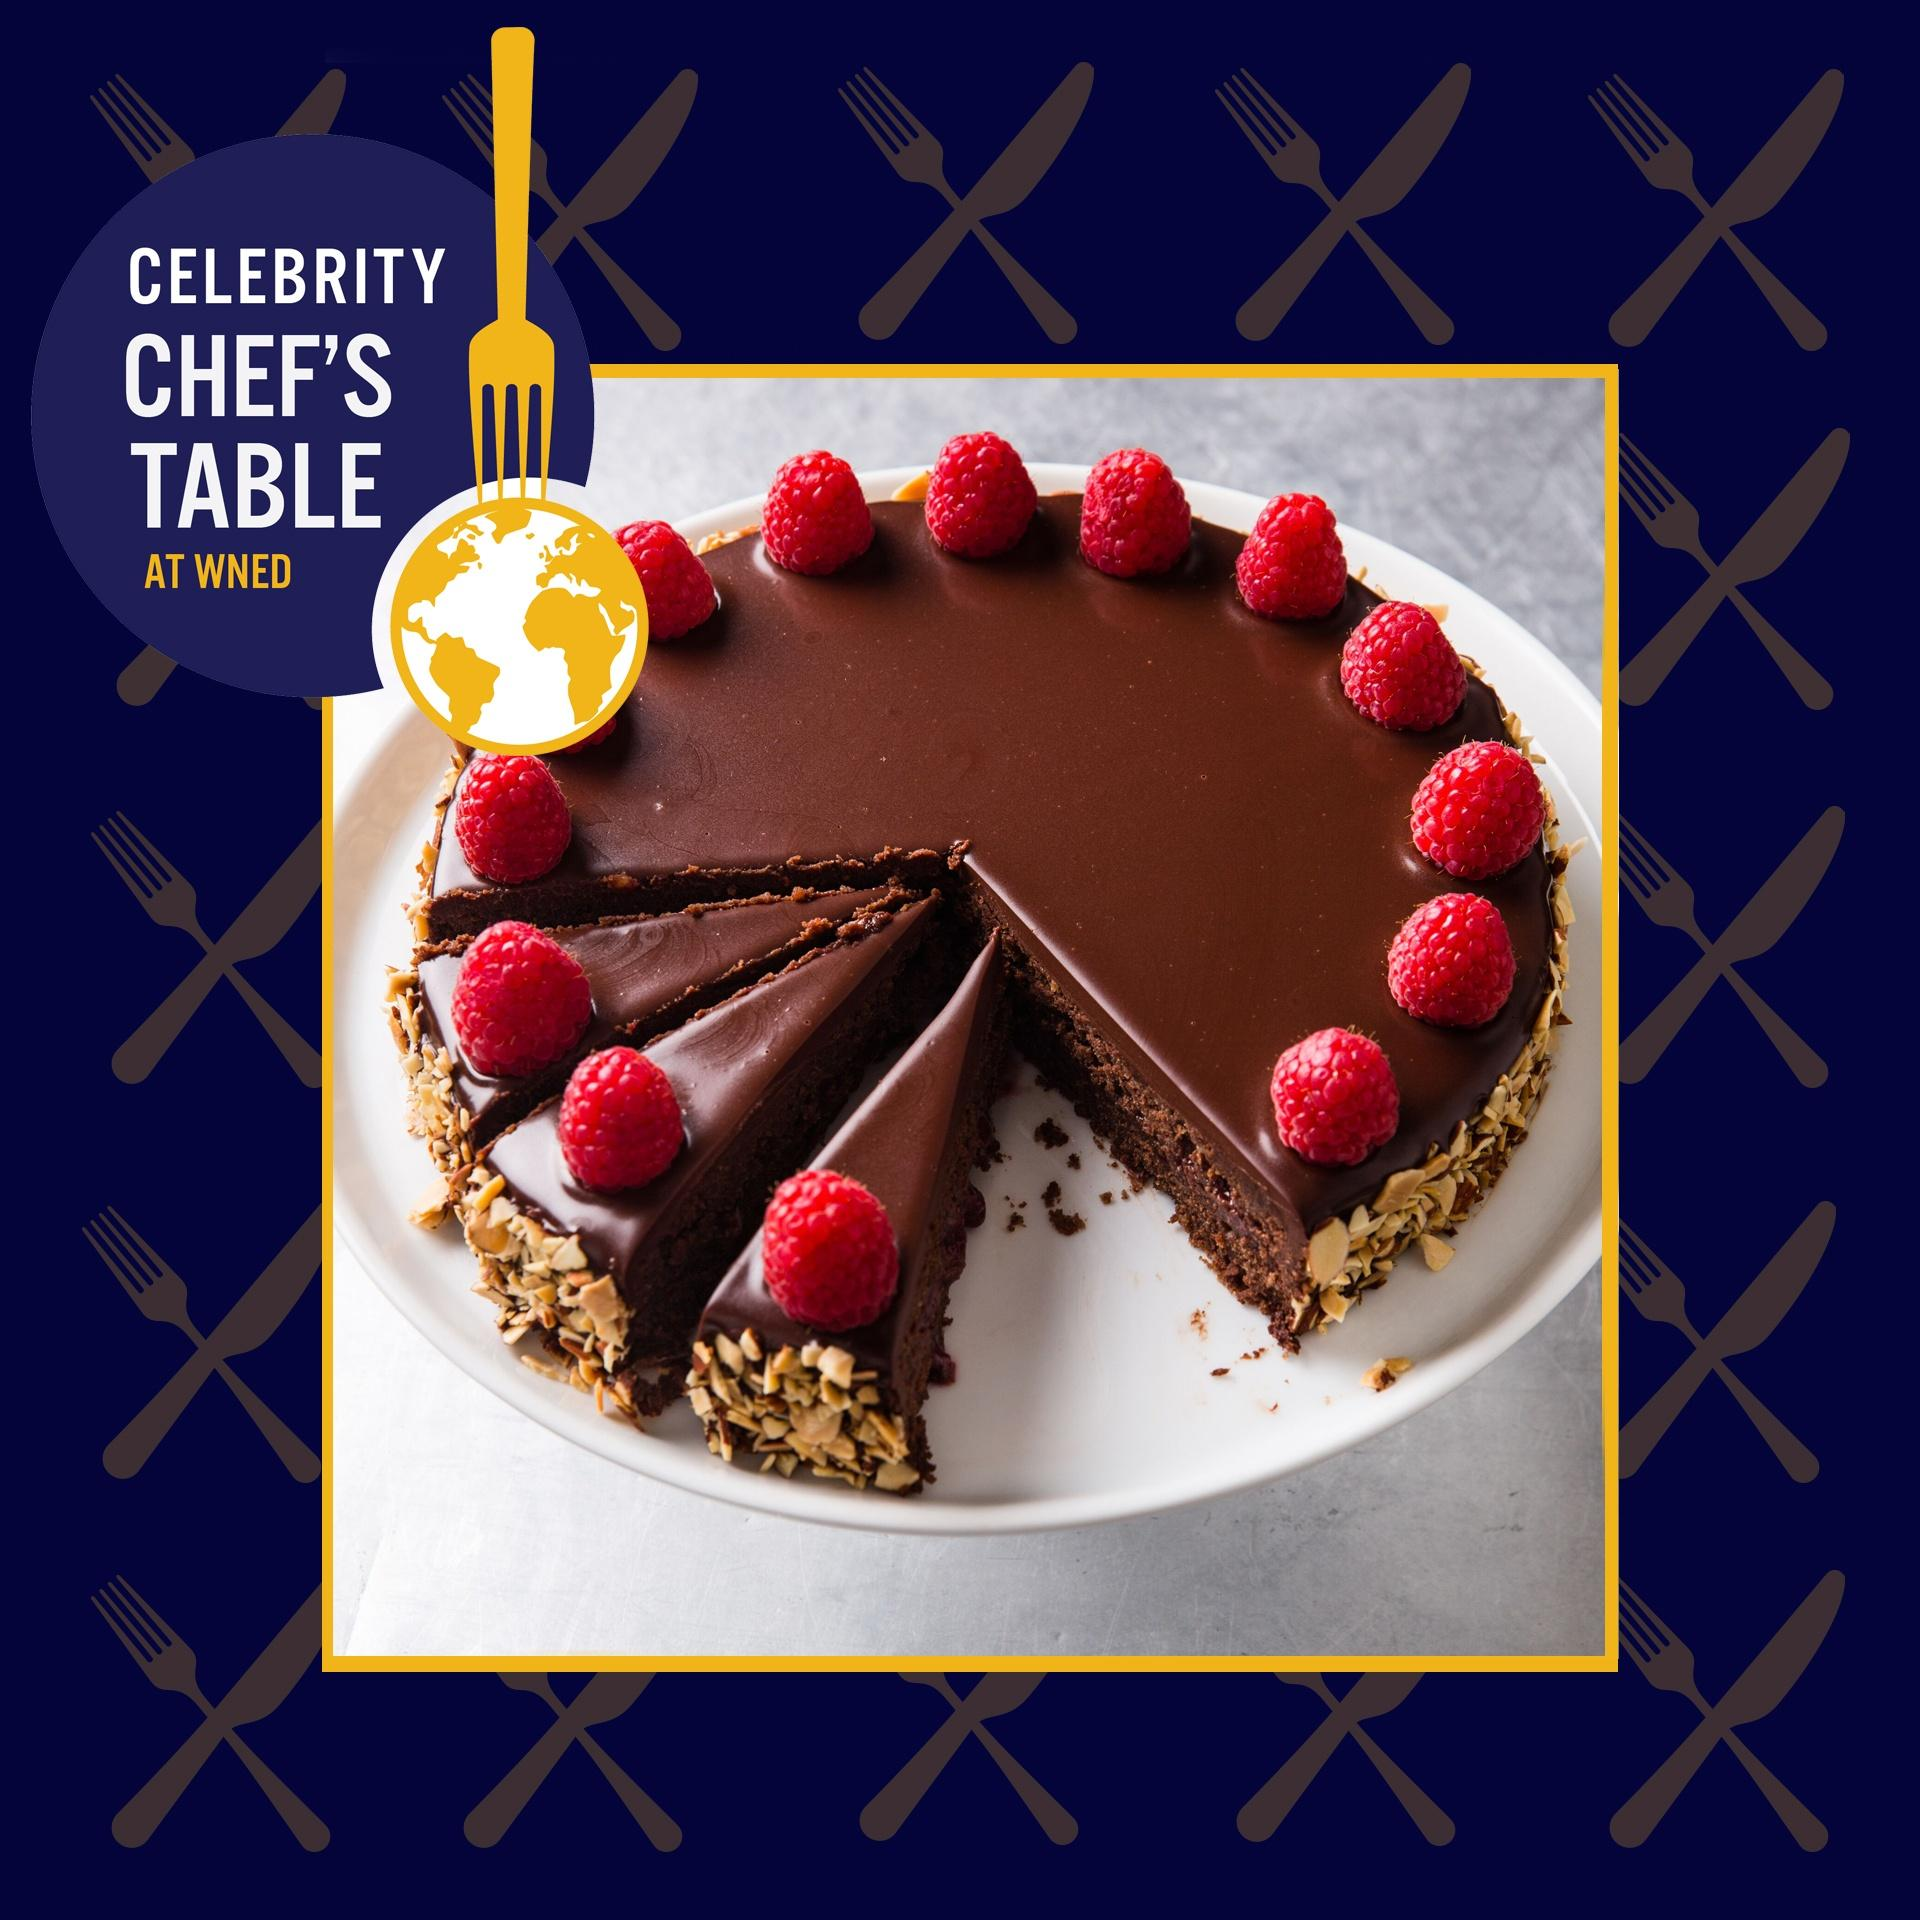 Celebrity Chef's Table Dessert Course: Chocolate-Raspberry Torte